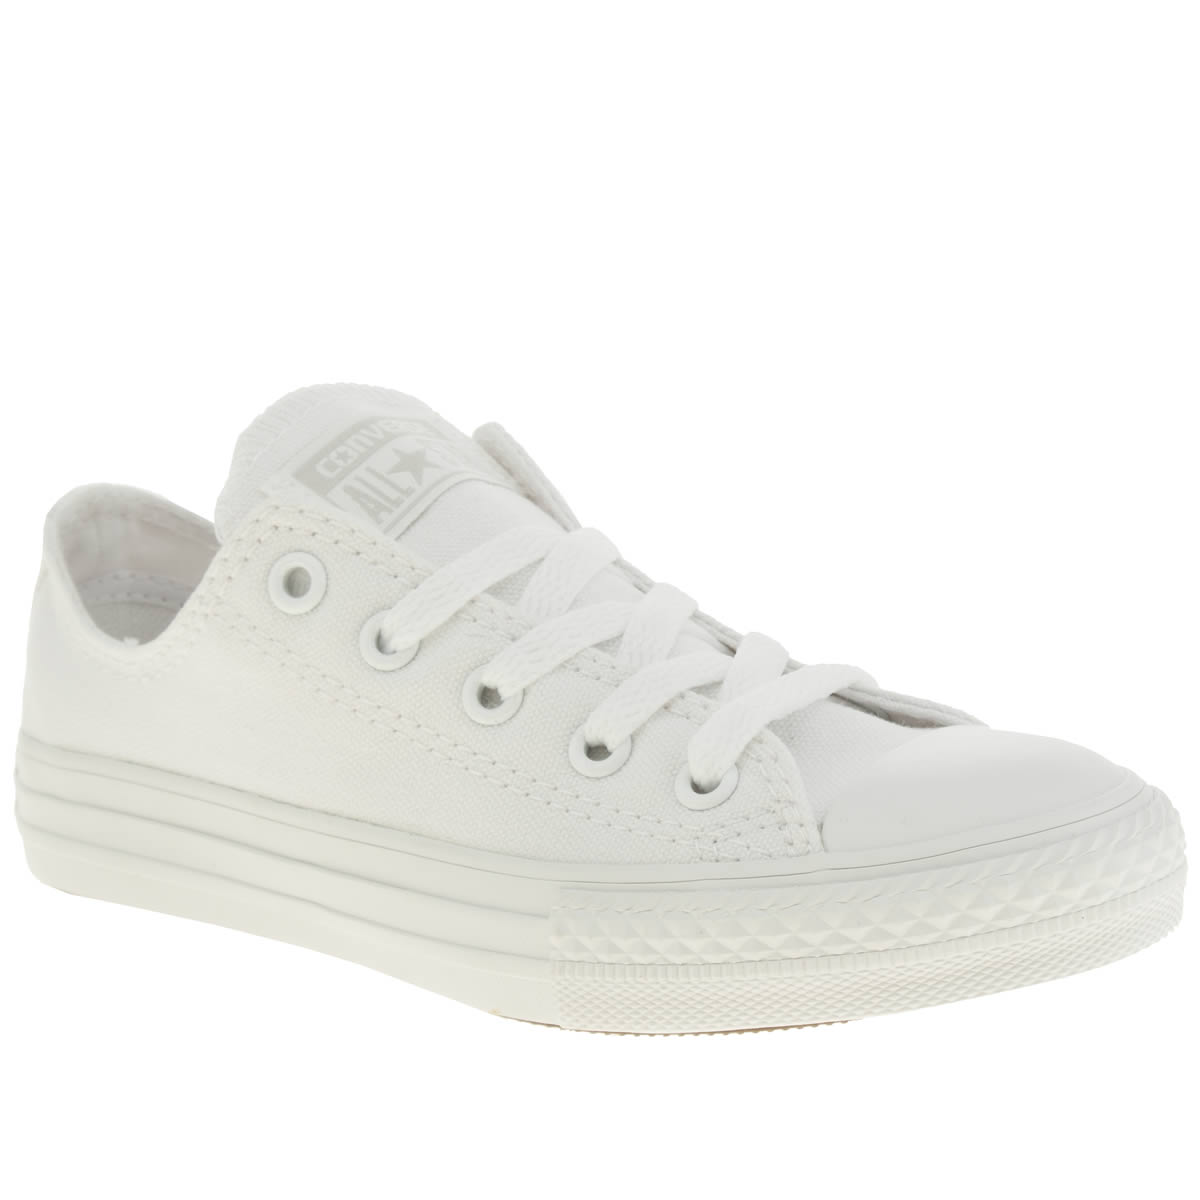 converse white all star oxford Boys Junior Trainers